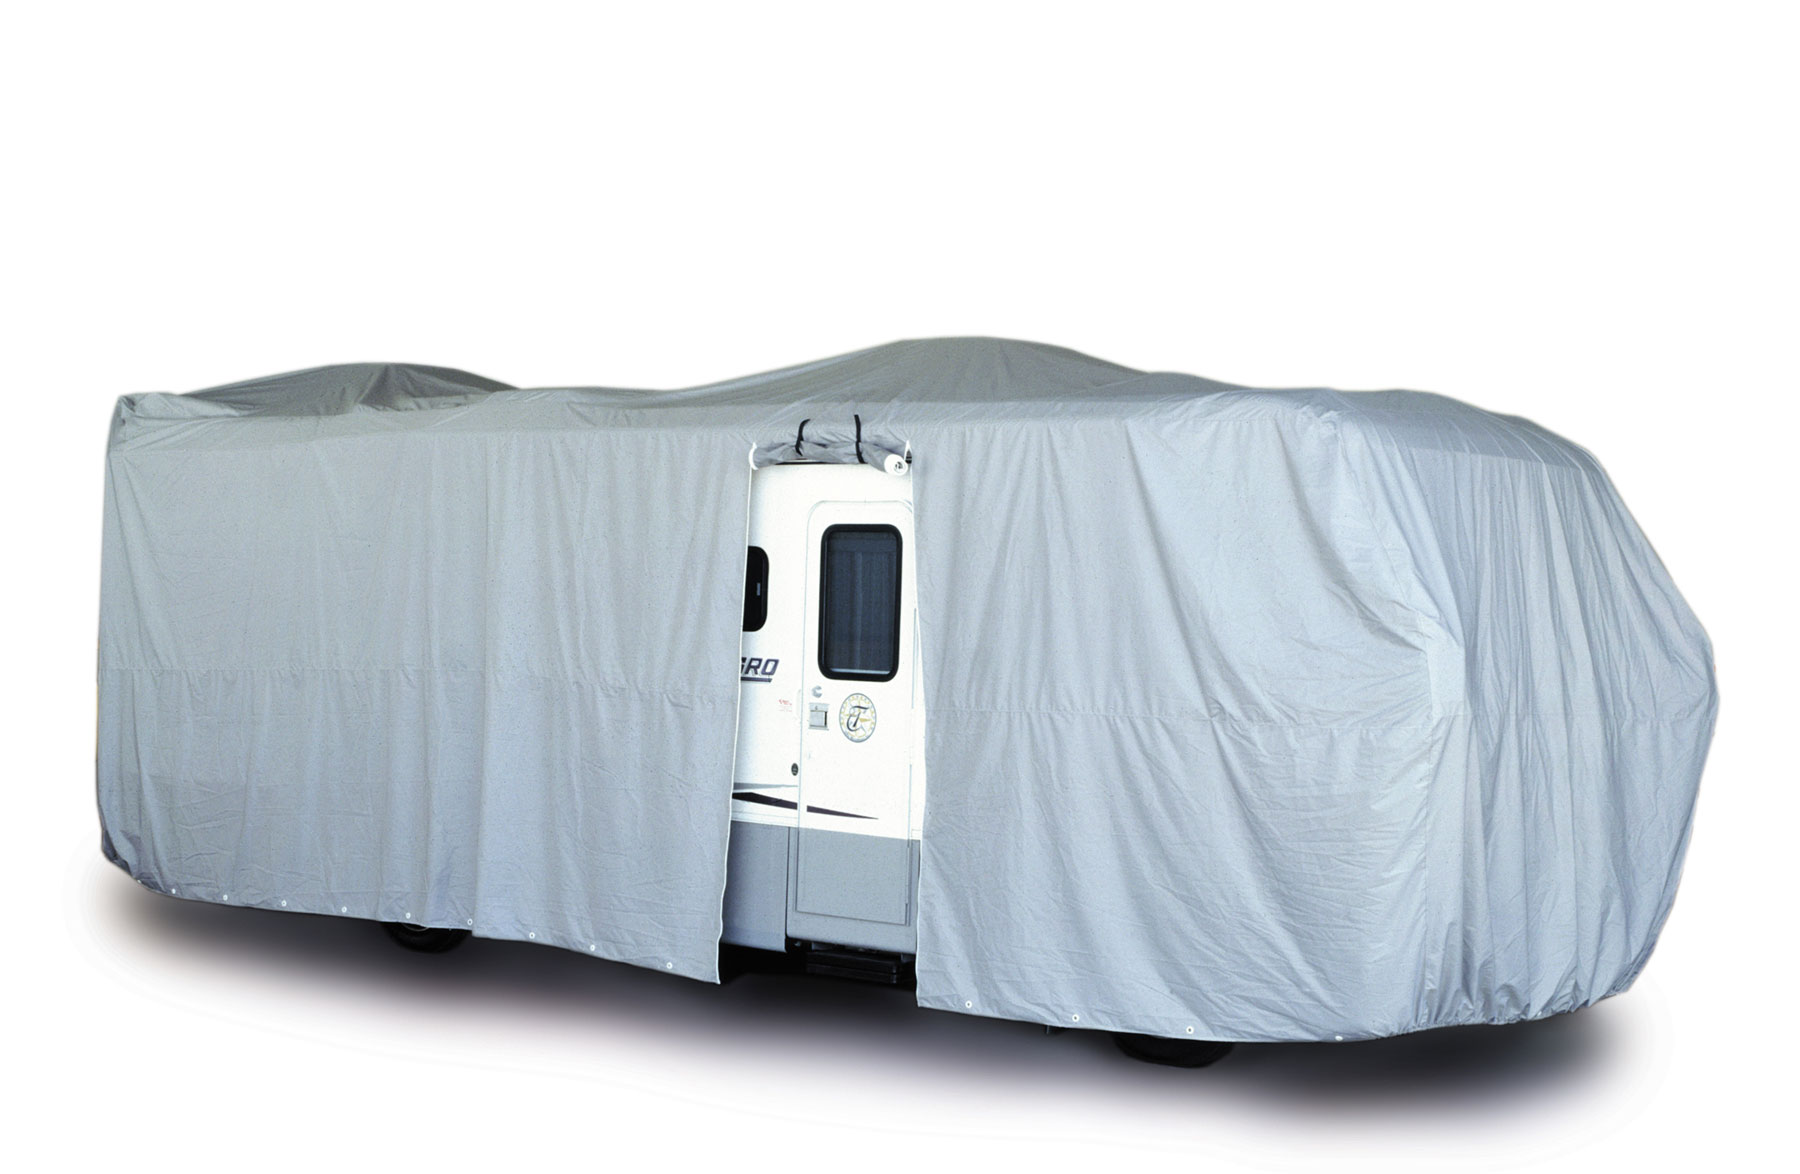 Rv Motorhome Covers With Luxury Type In Uk